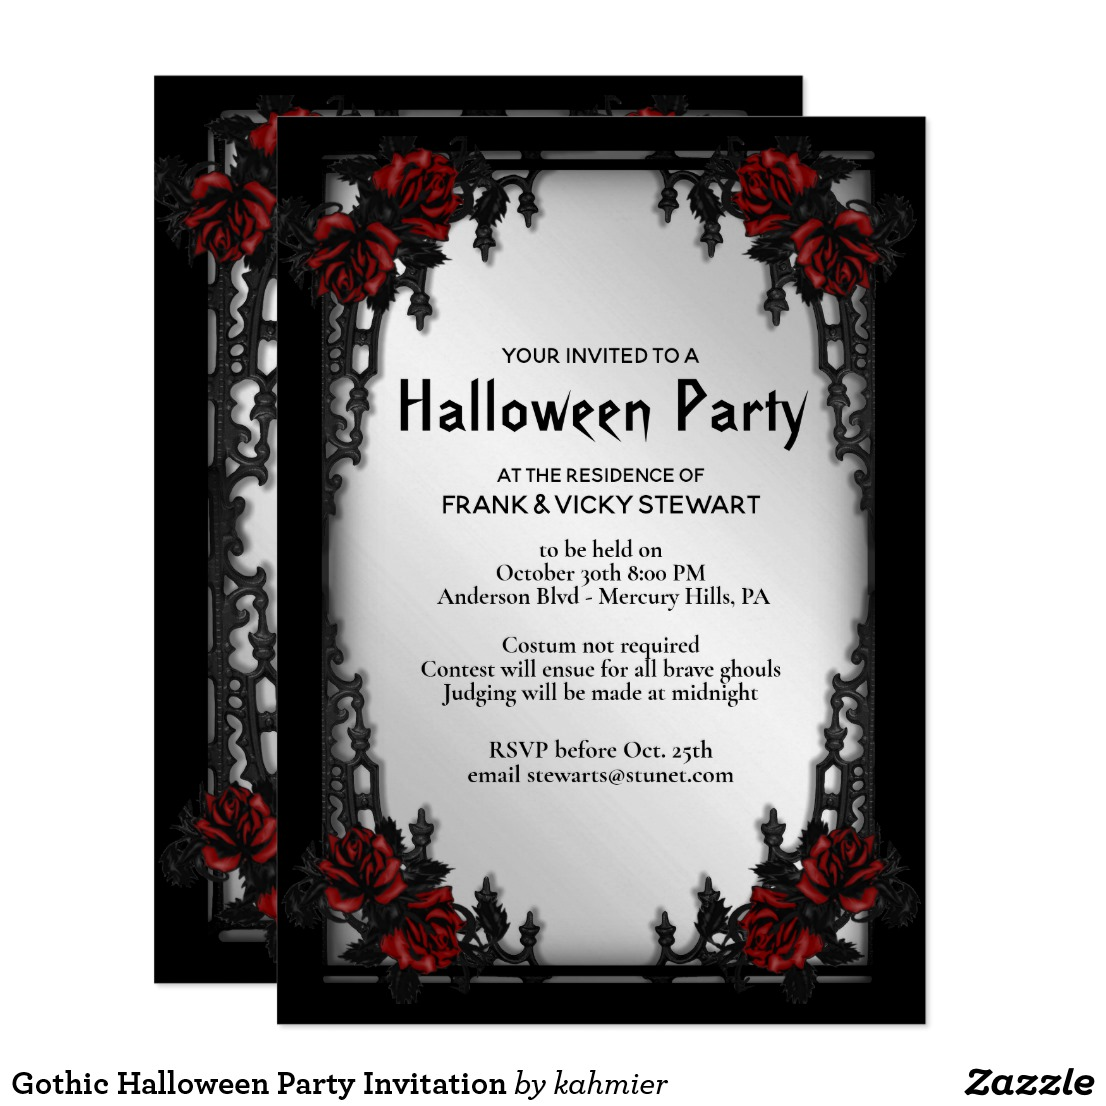 Gothic Halloween Party Invitation